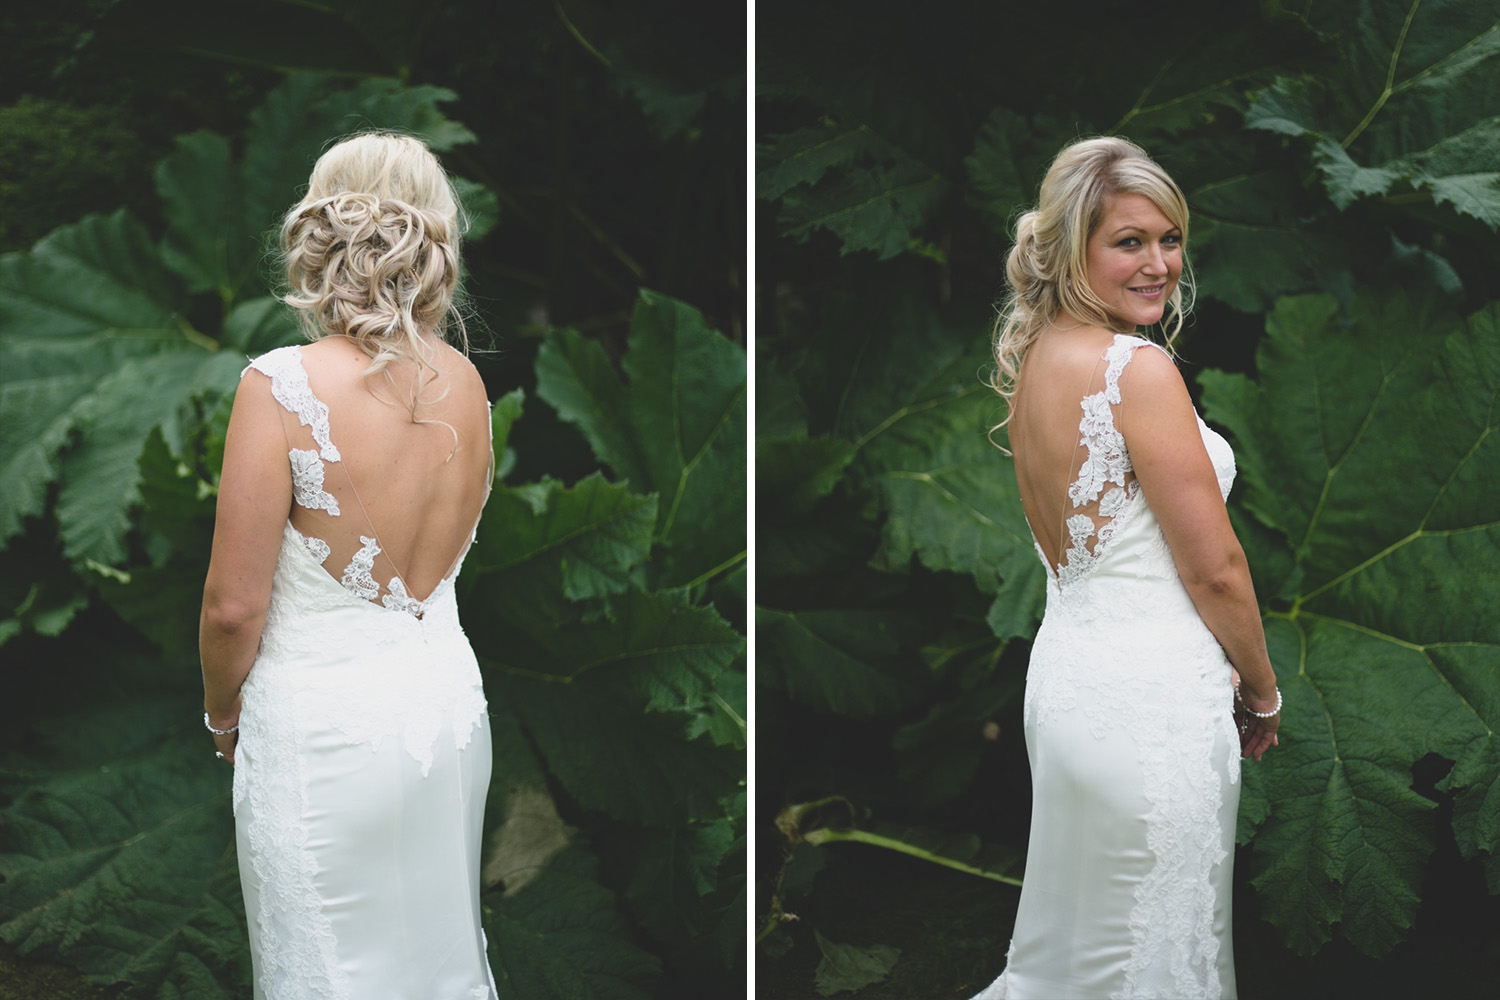 Bride models stunning dress at Ballybeg house